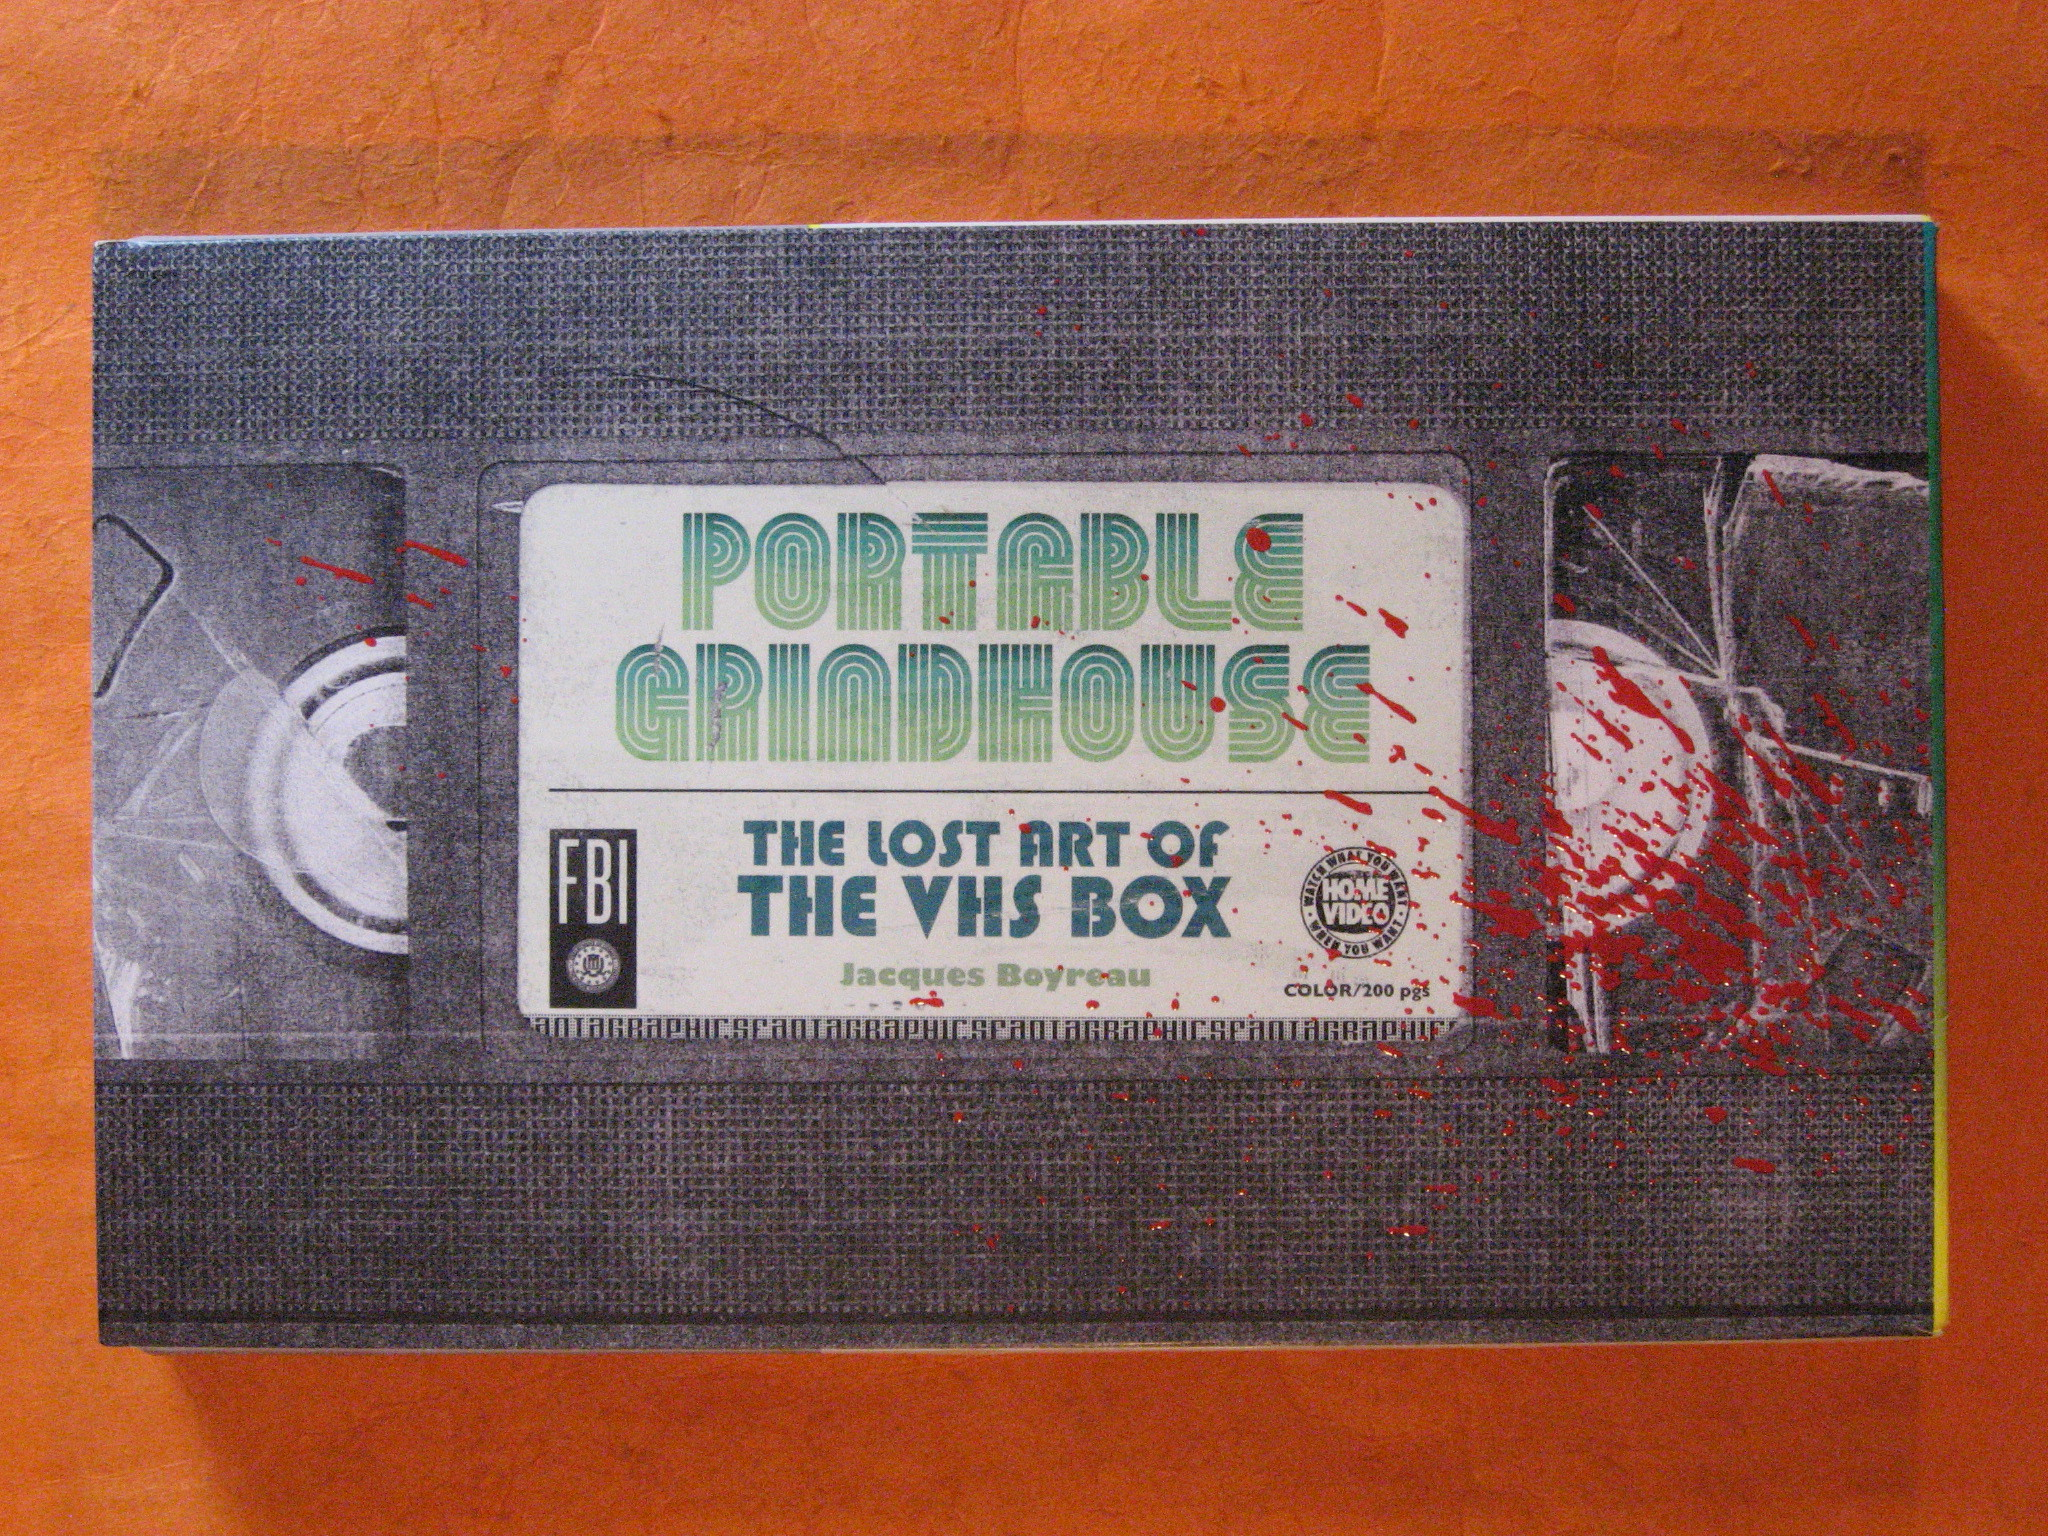 Portable Grindhouse: The Lost Art of the VHS Box,